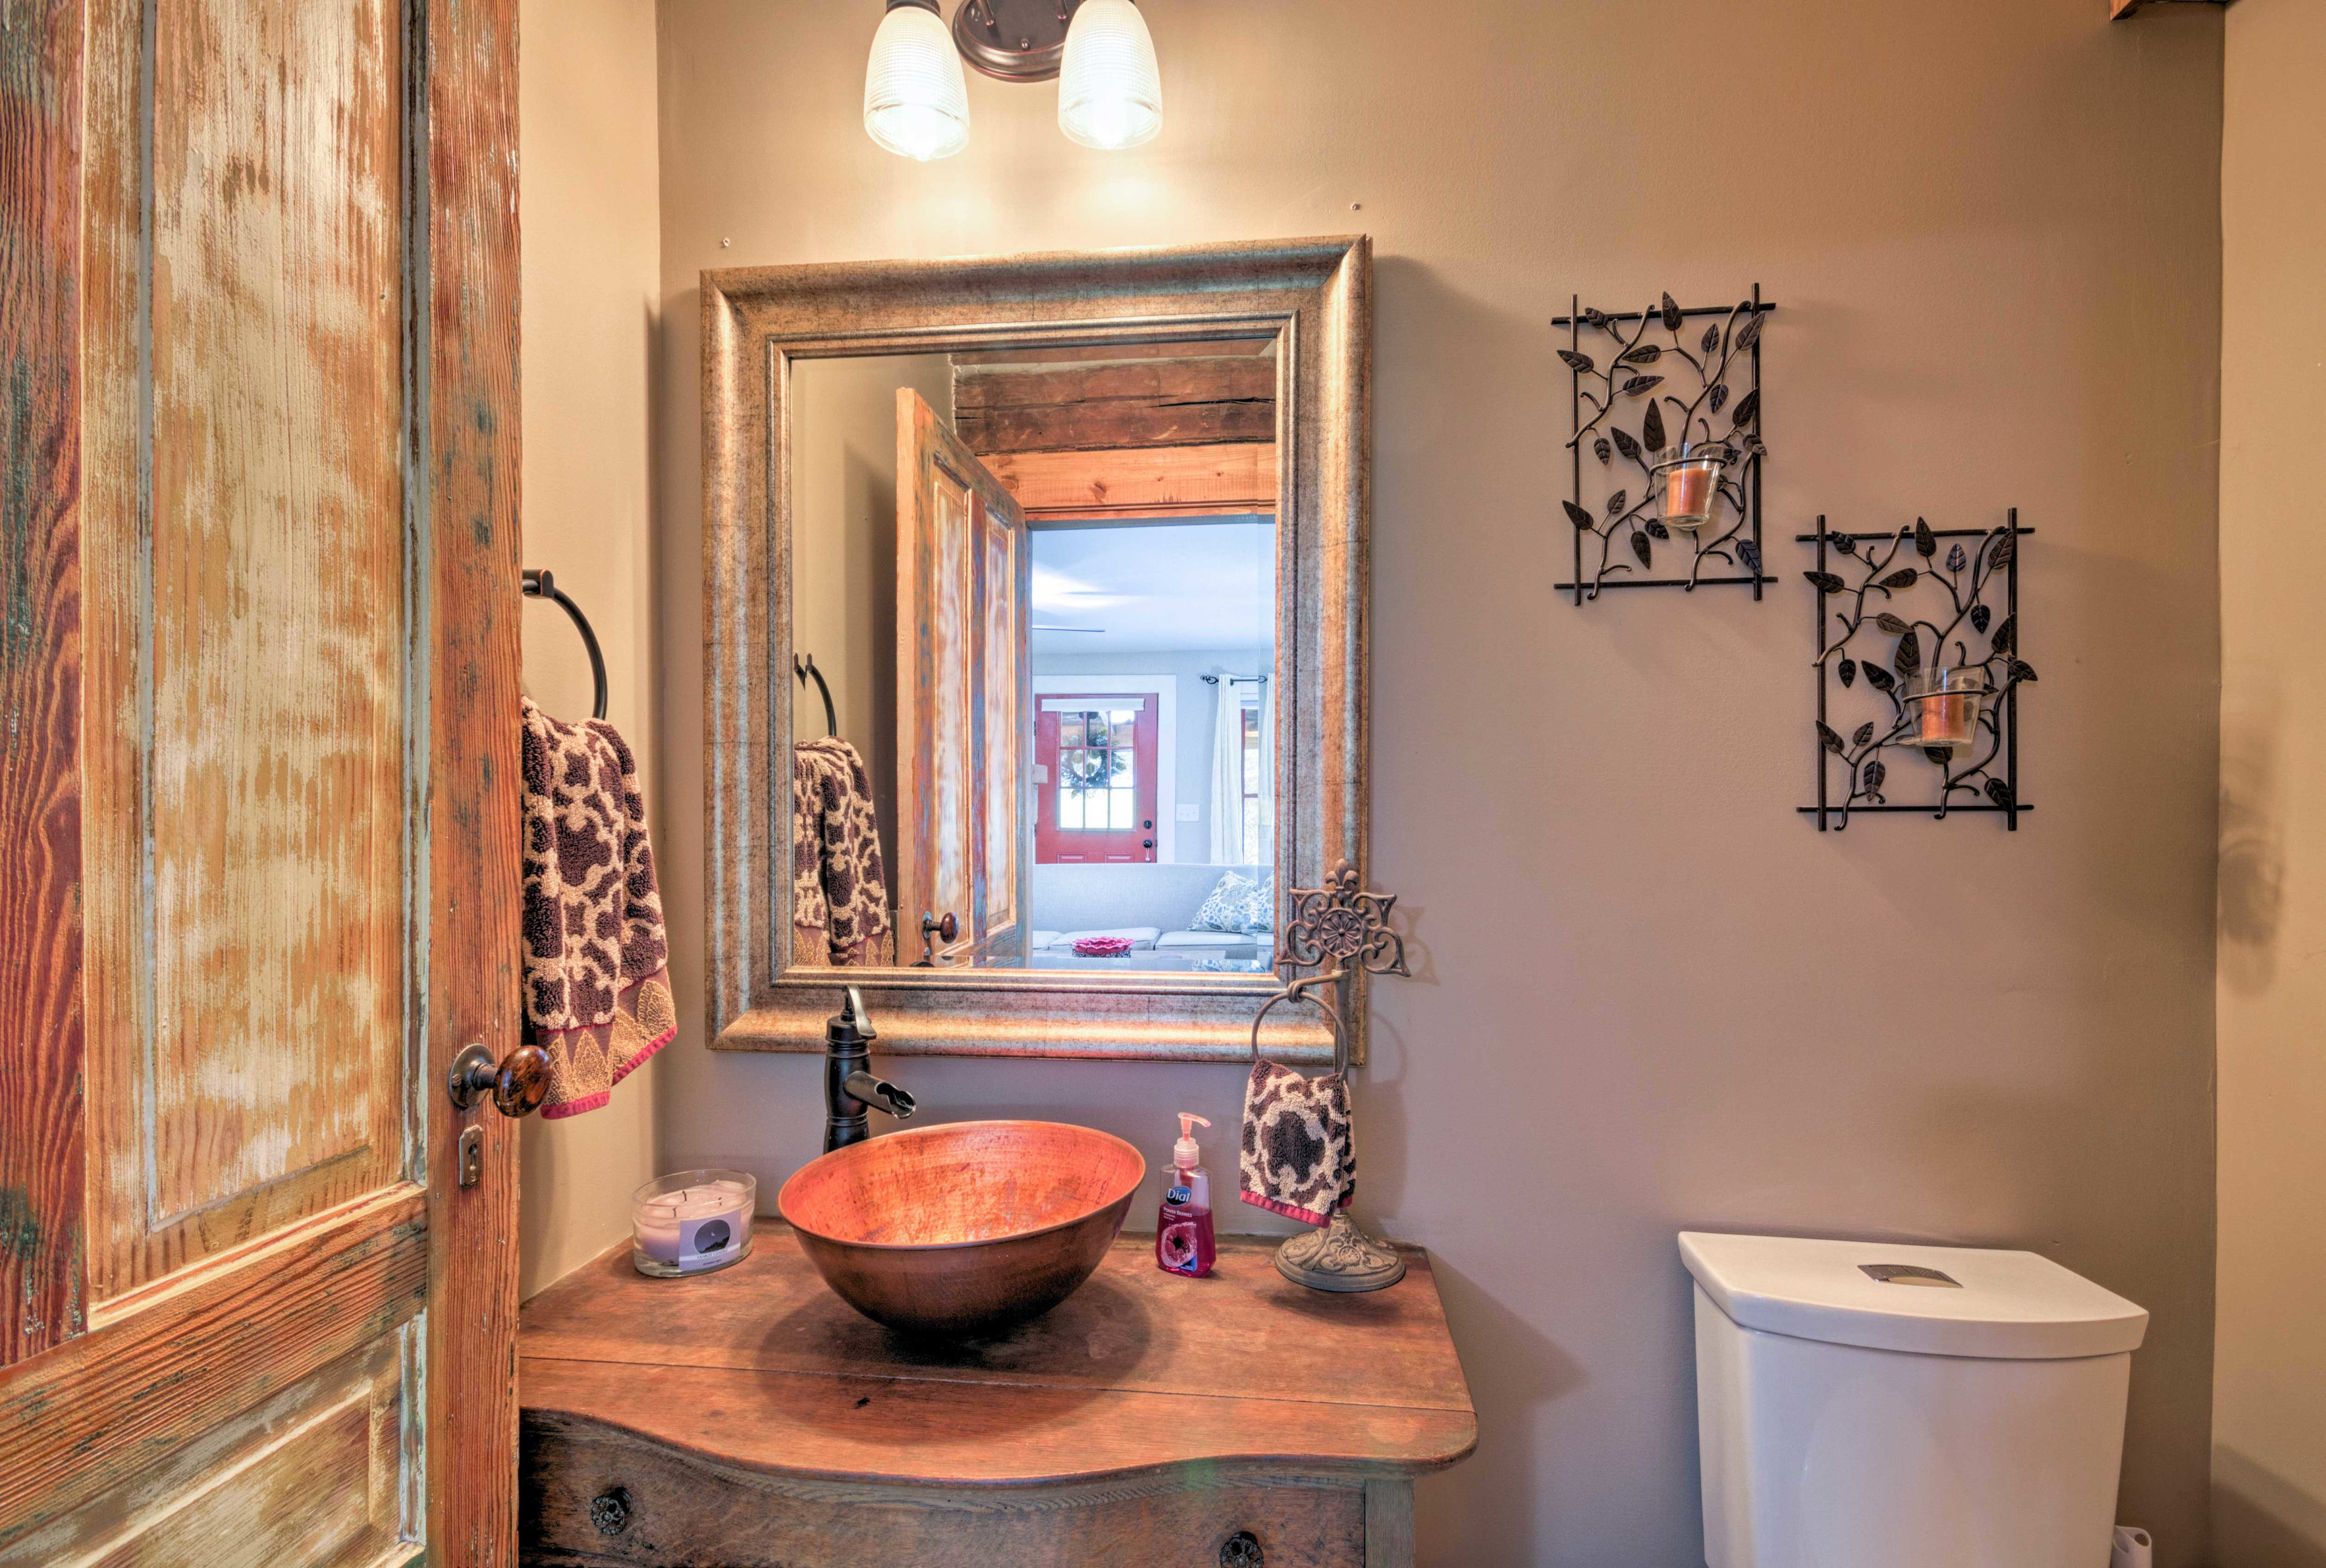 Rinse up before dinner in the half bath.